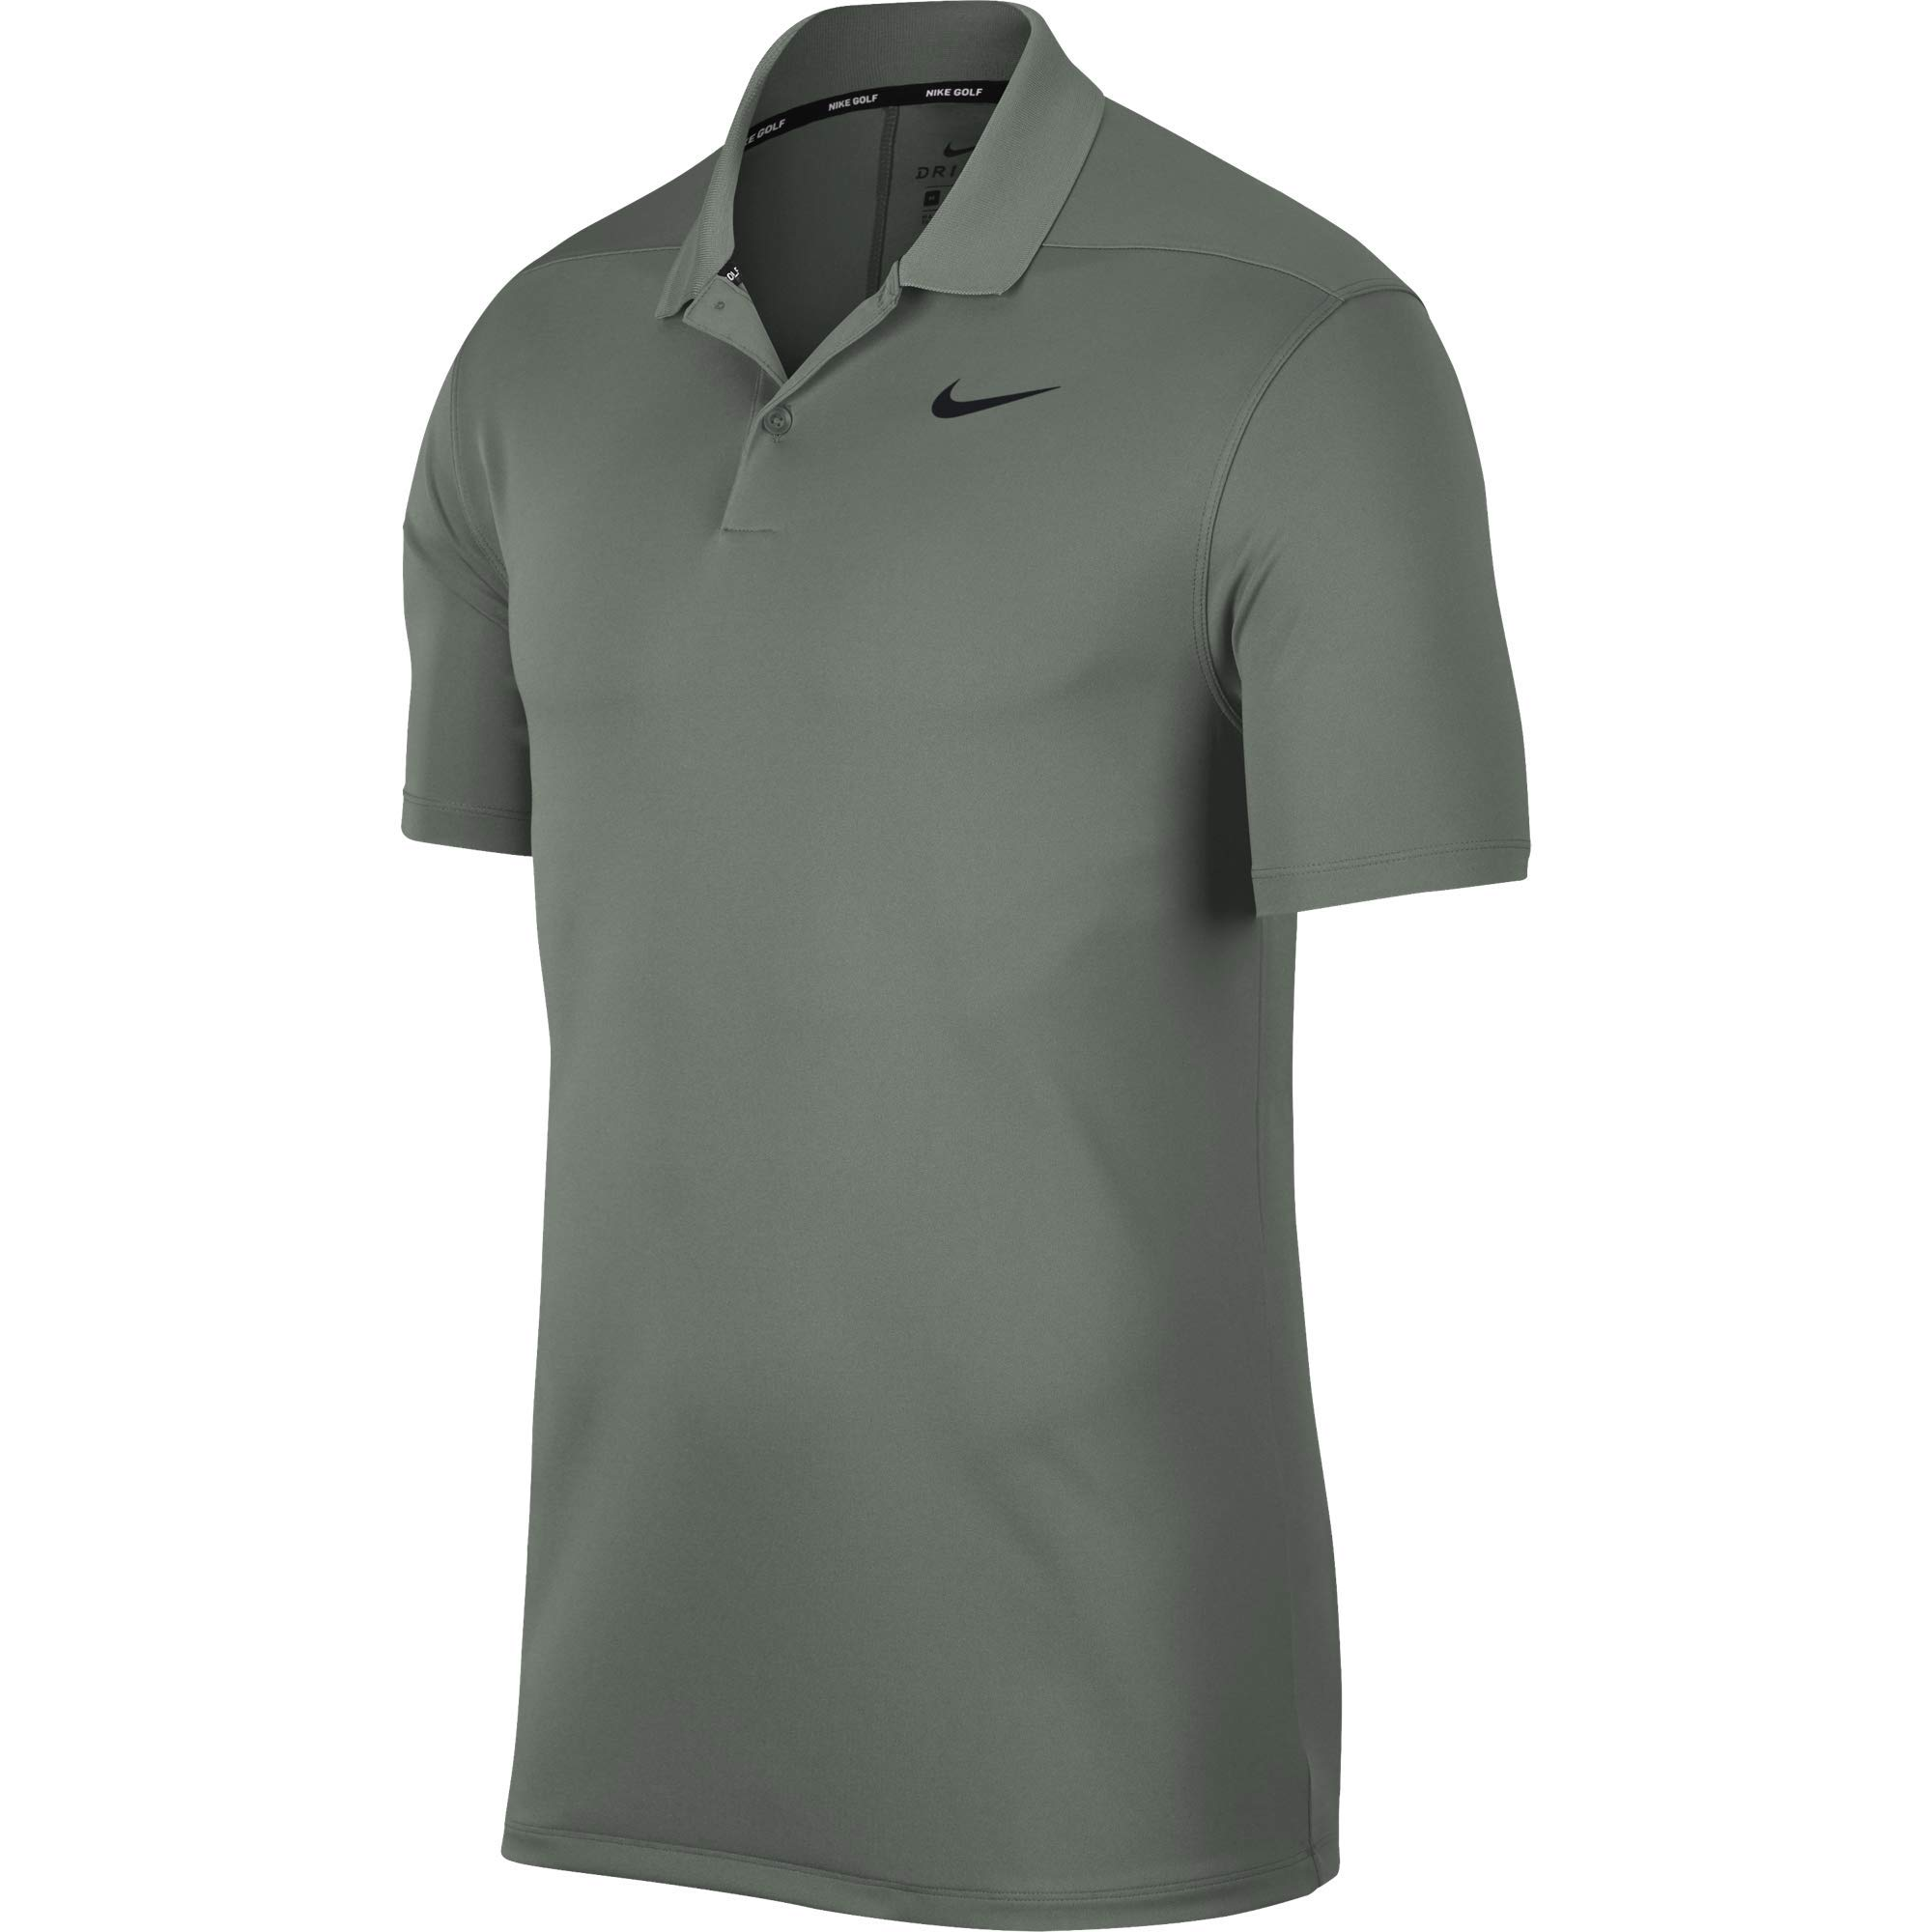 Nike Men's Dry Victory Polo Solid Left Chest, Vintage Lichen/Black, Small by Nike